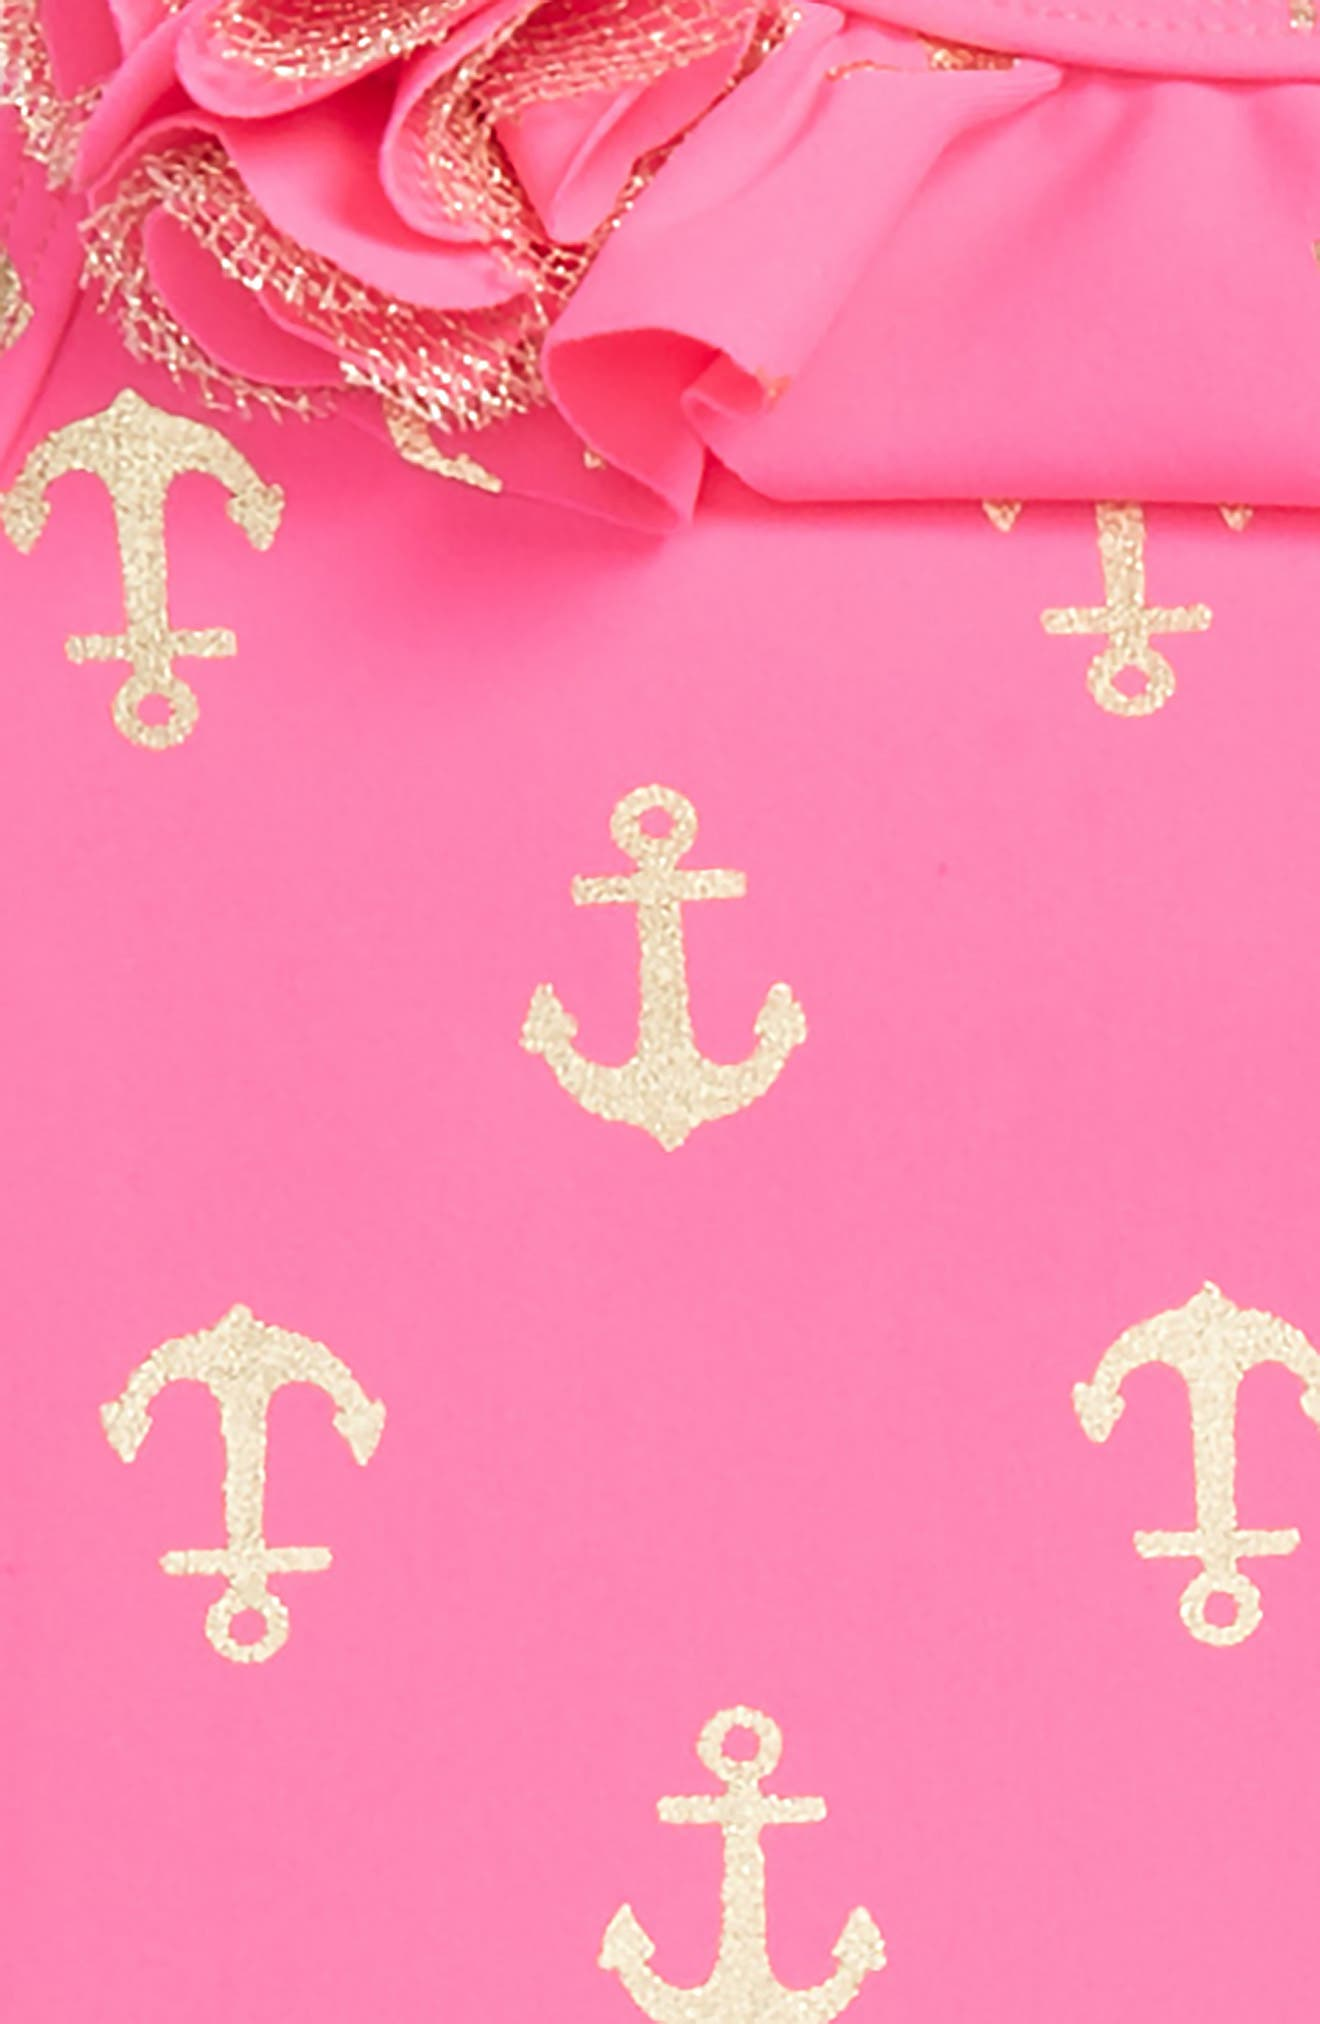 Anchor Two-Piece Swimsuit,                             Alternate thumbnail 2, color,                             Hot Pink